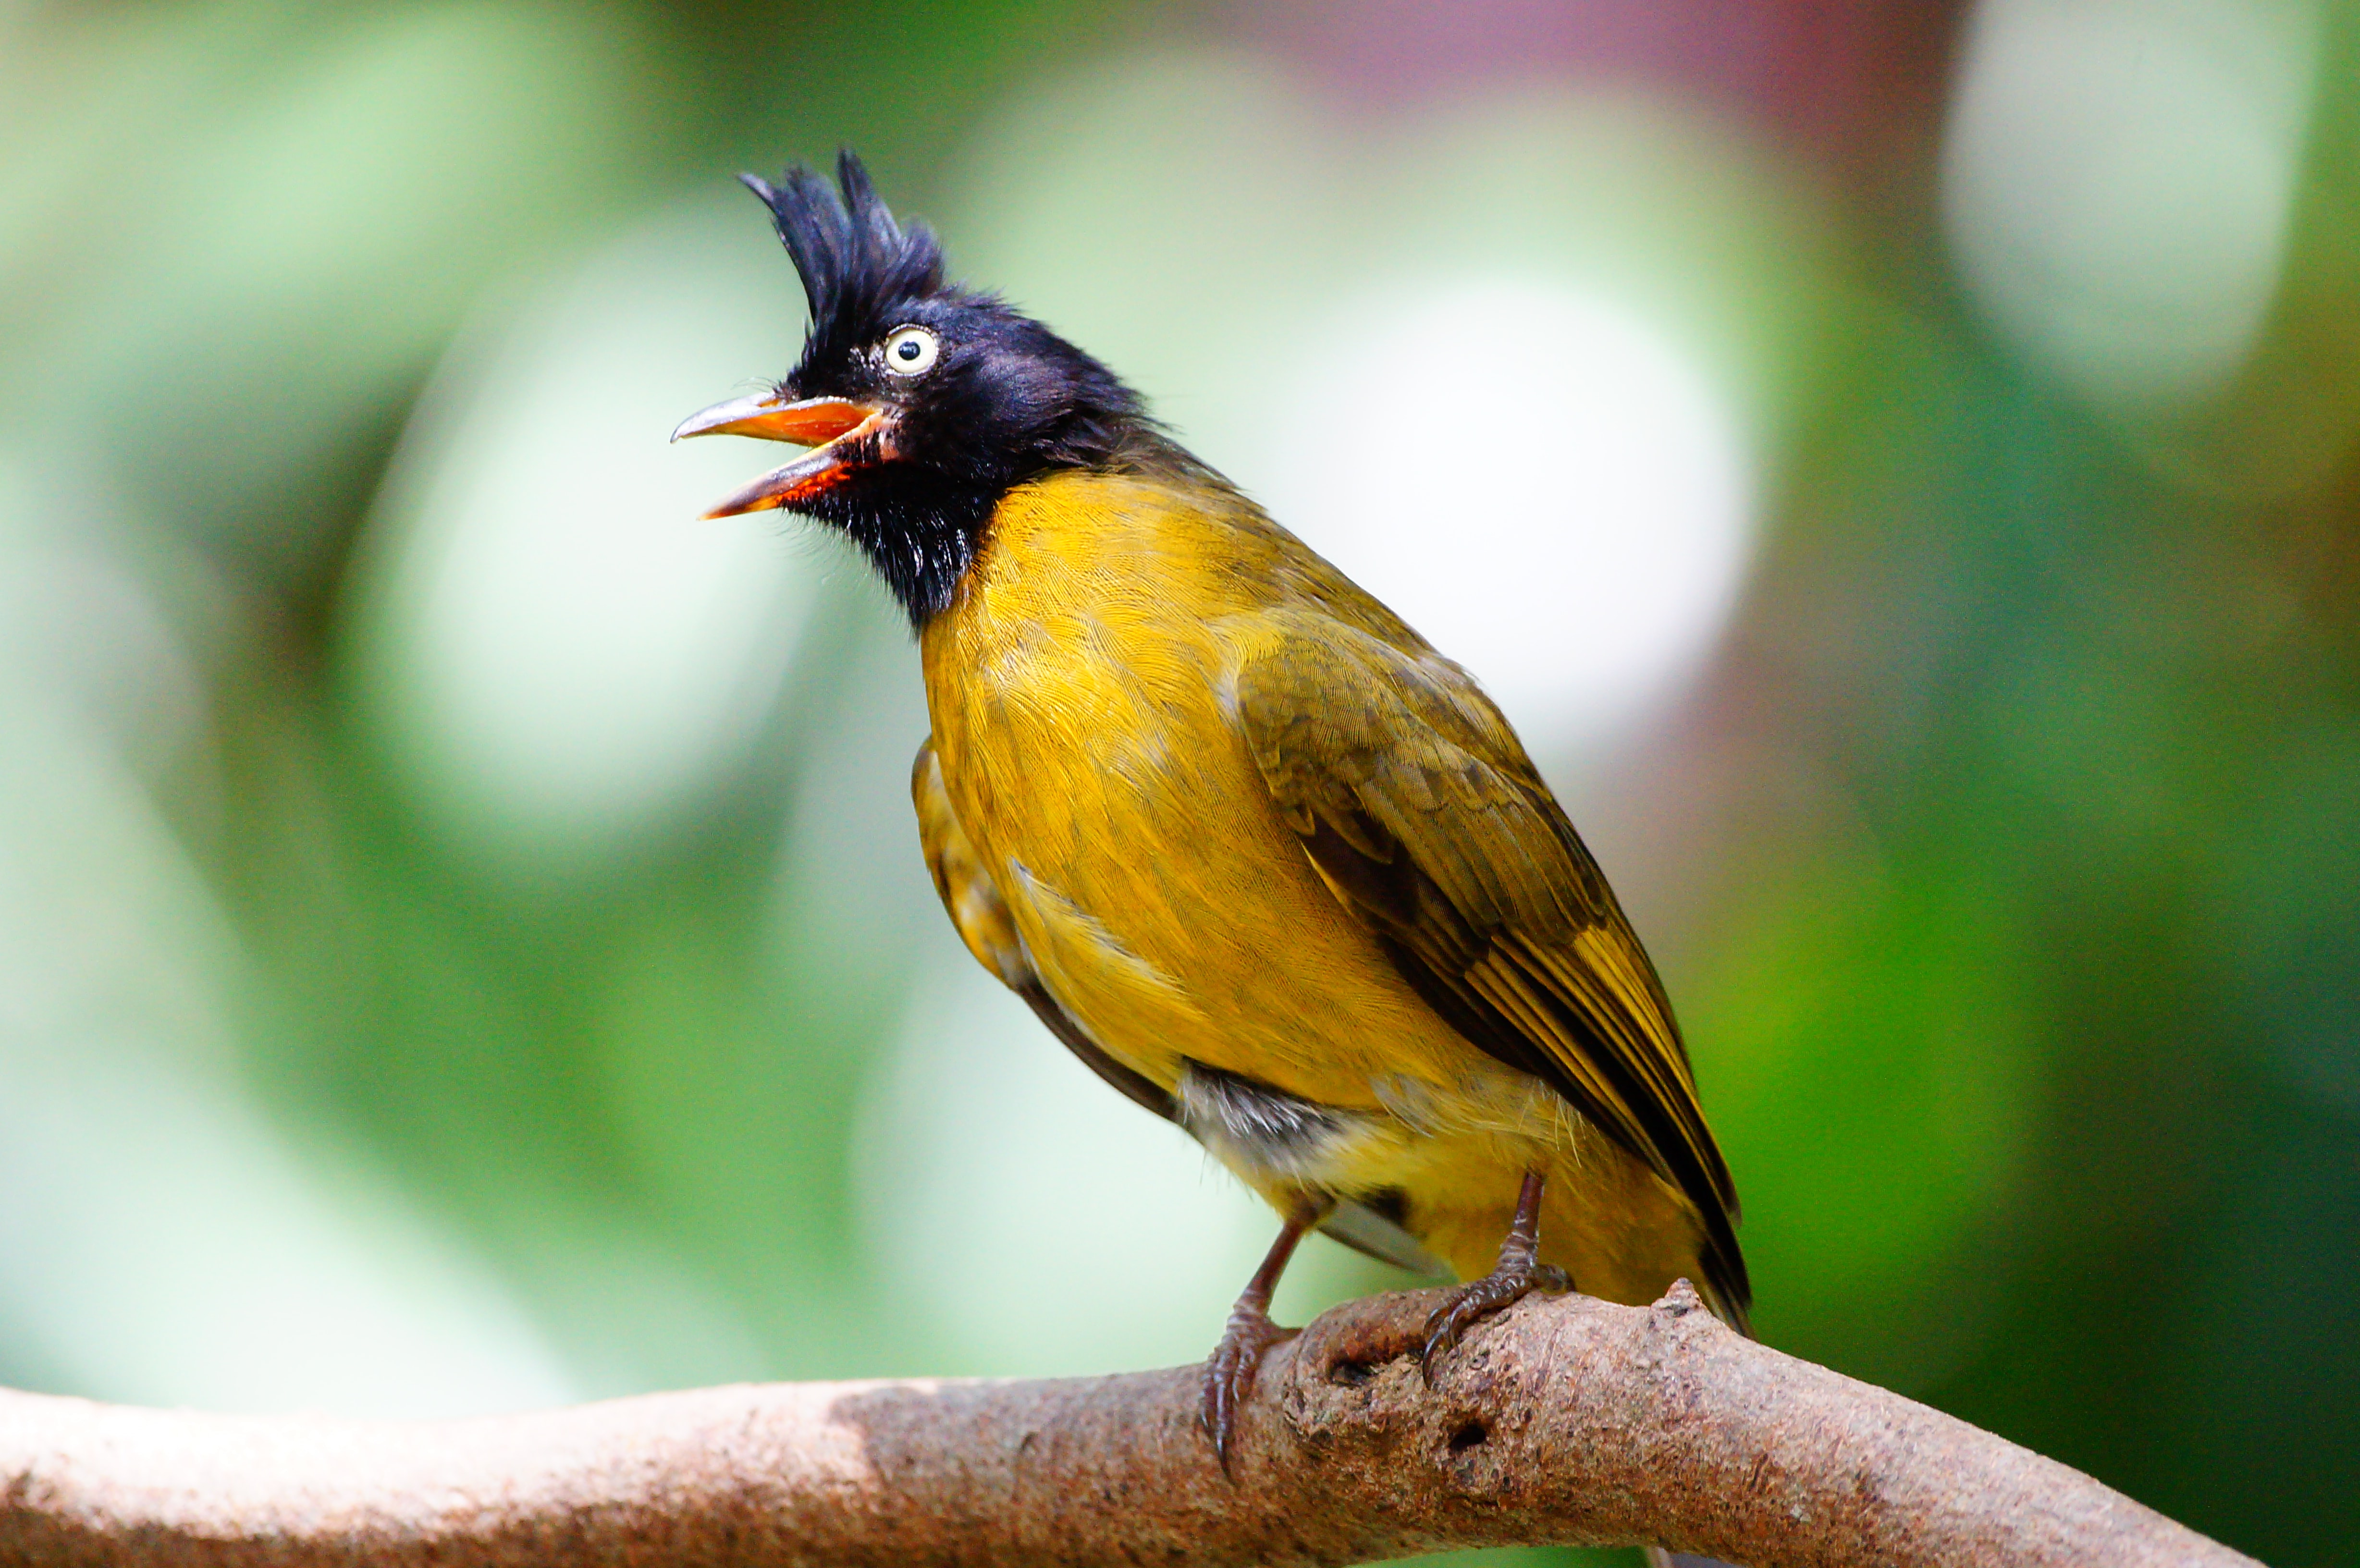 A black headed bird with a yellow belly and an open beak perched on a branch